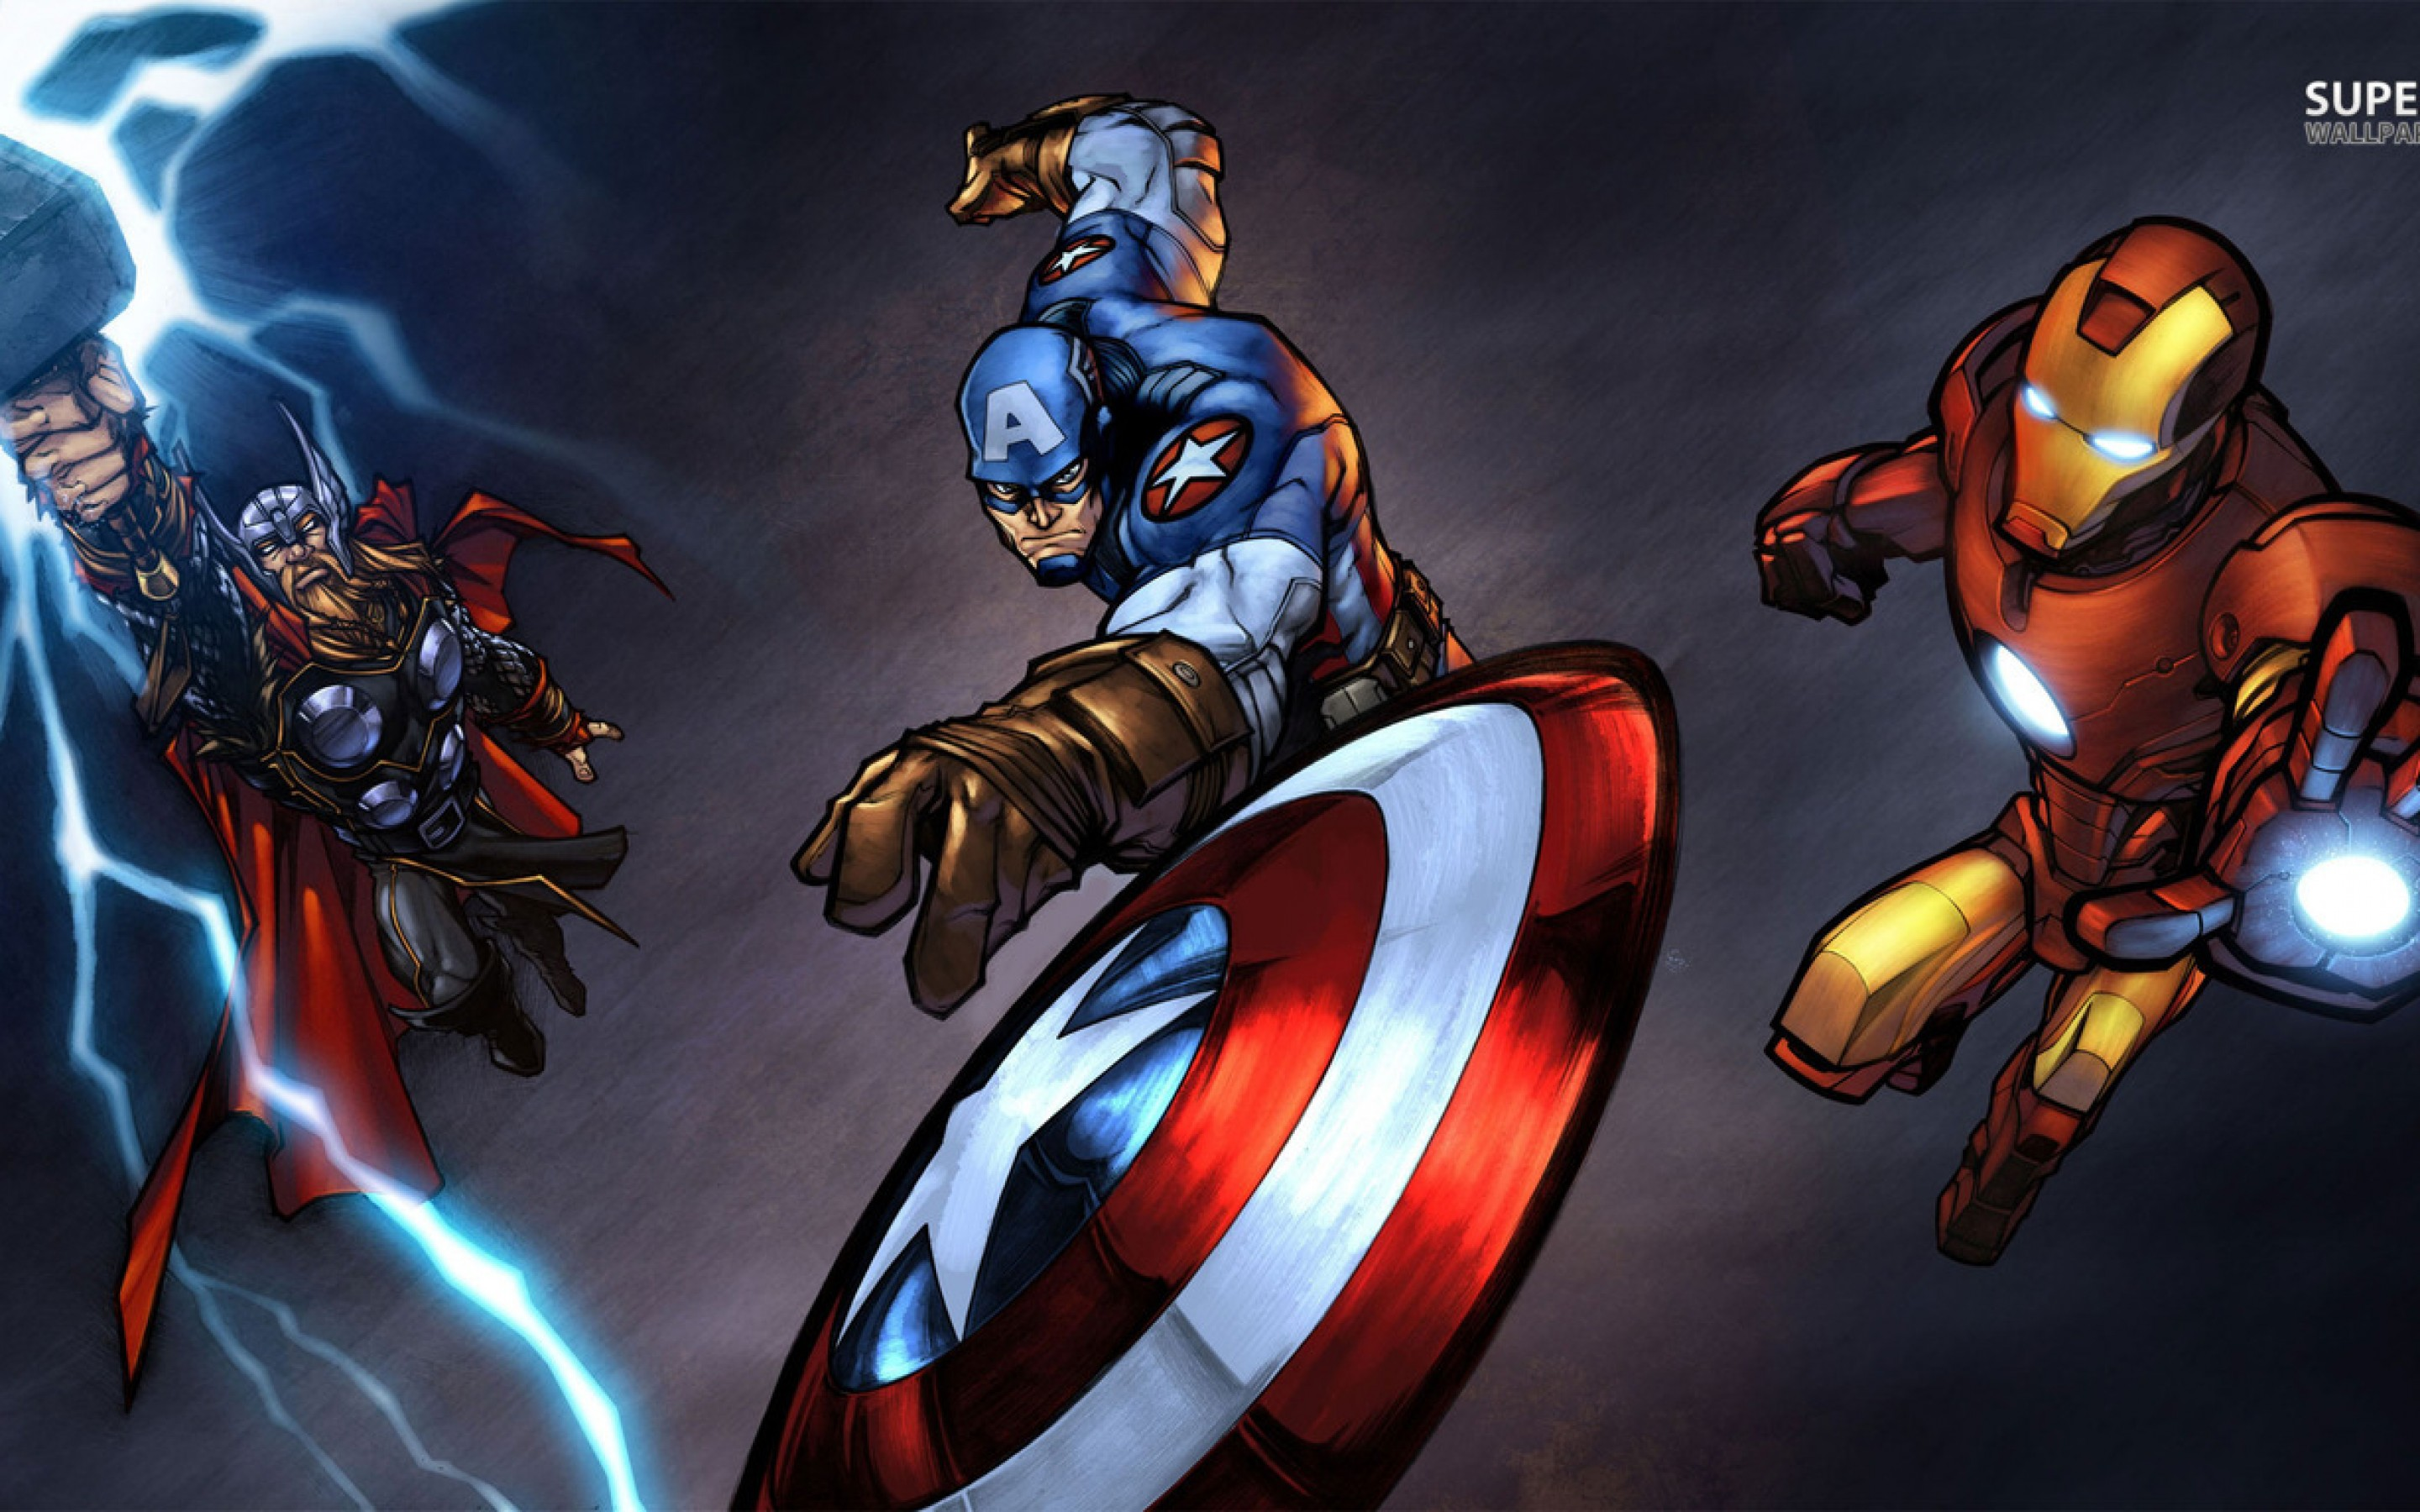 Avengers-Collection-For-Free-Download-wallpaper-wp38011689